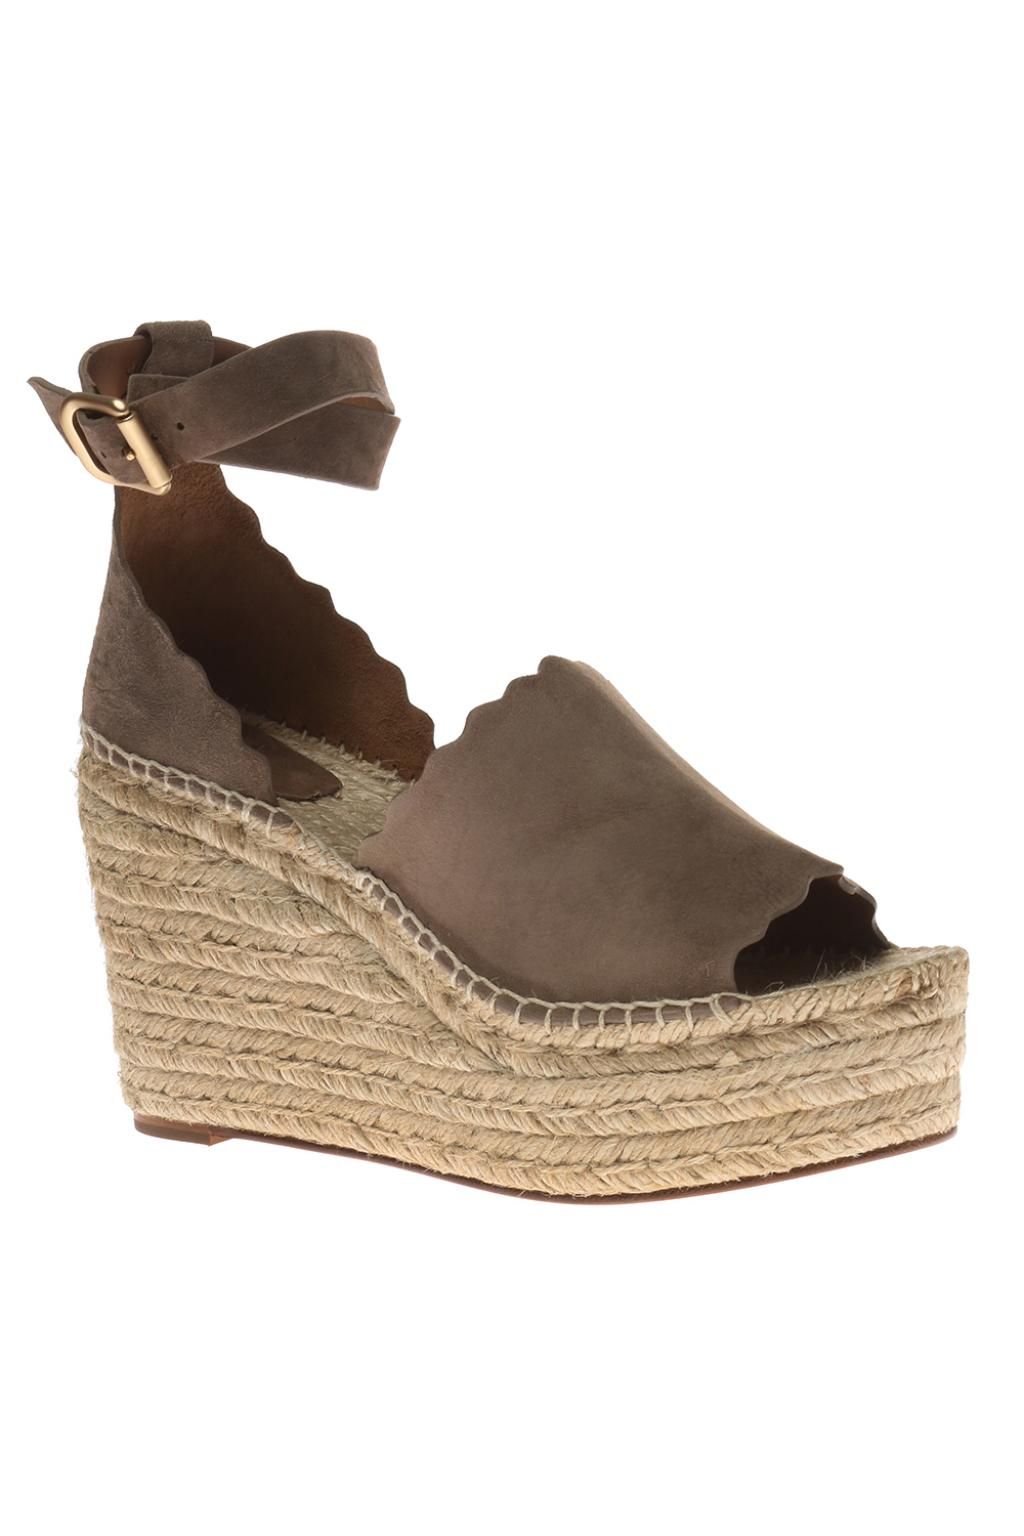 Chloé Woven wedge sandals